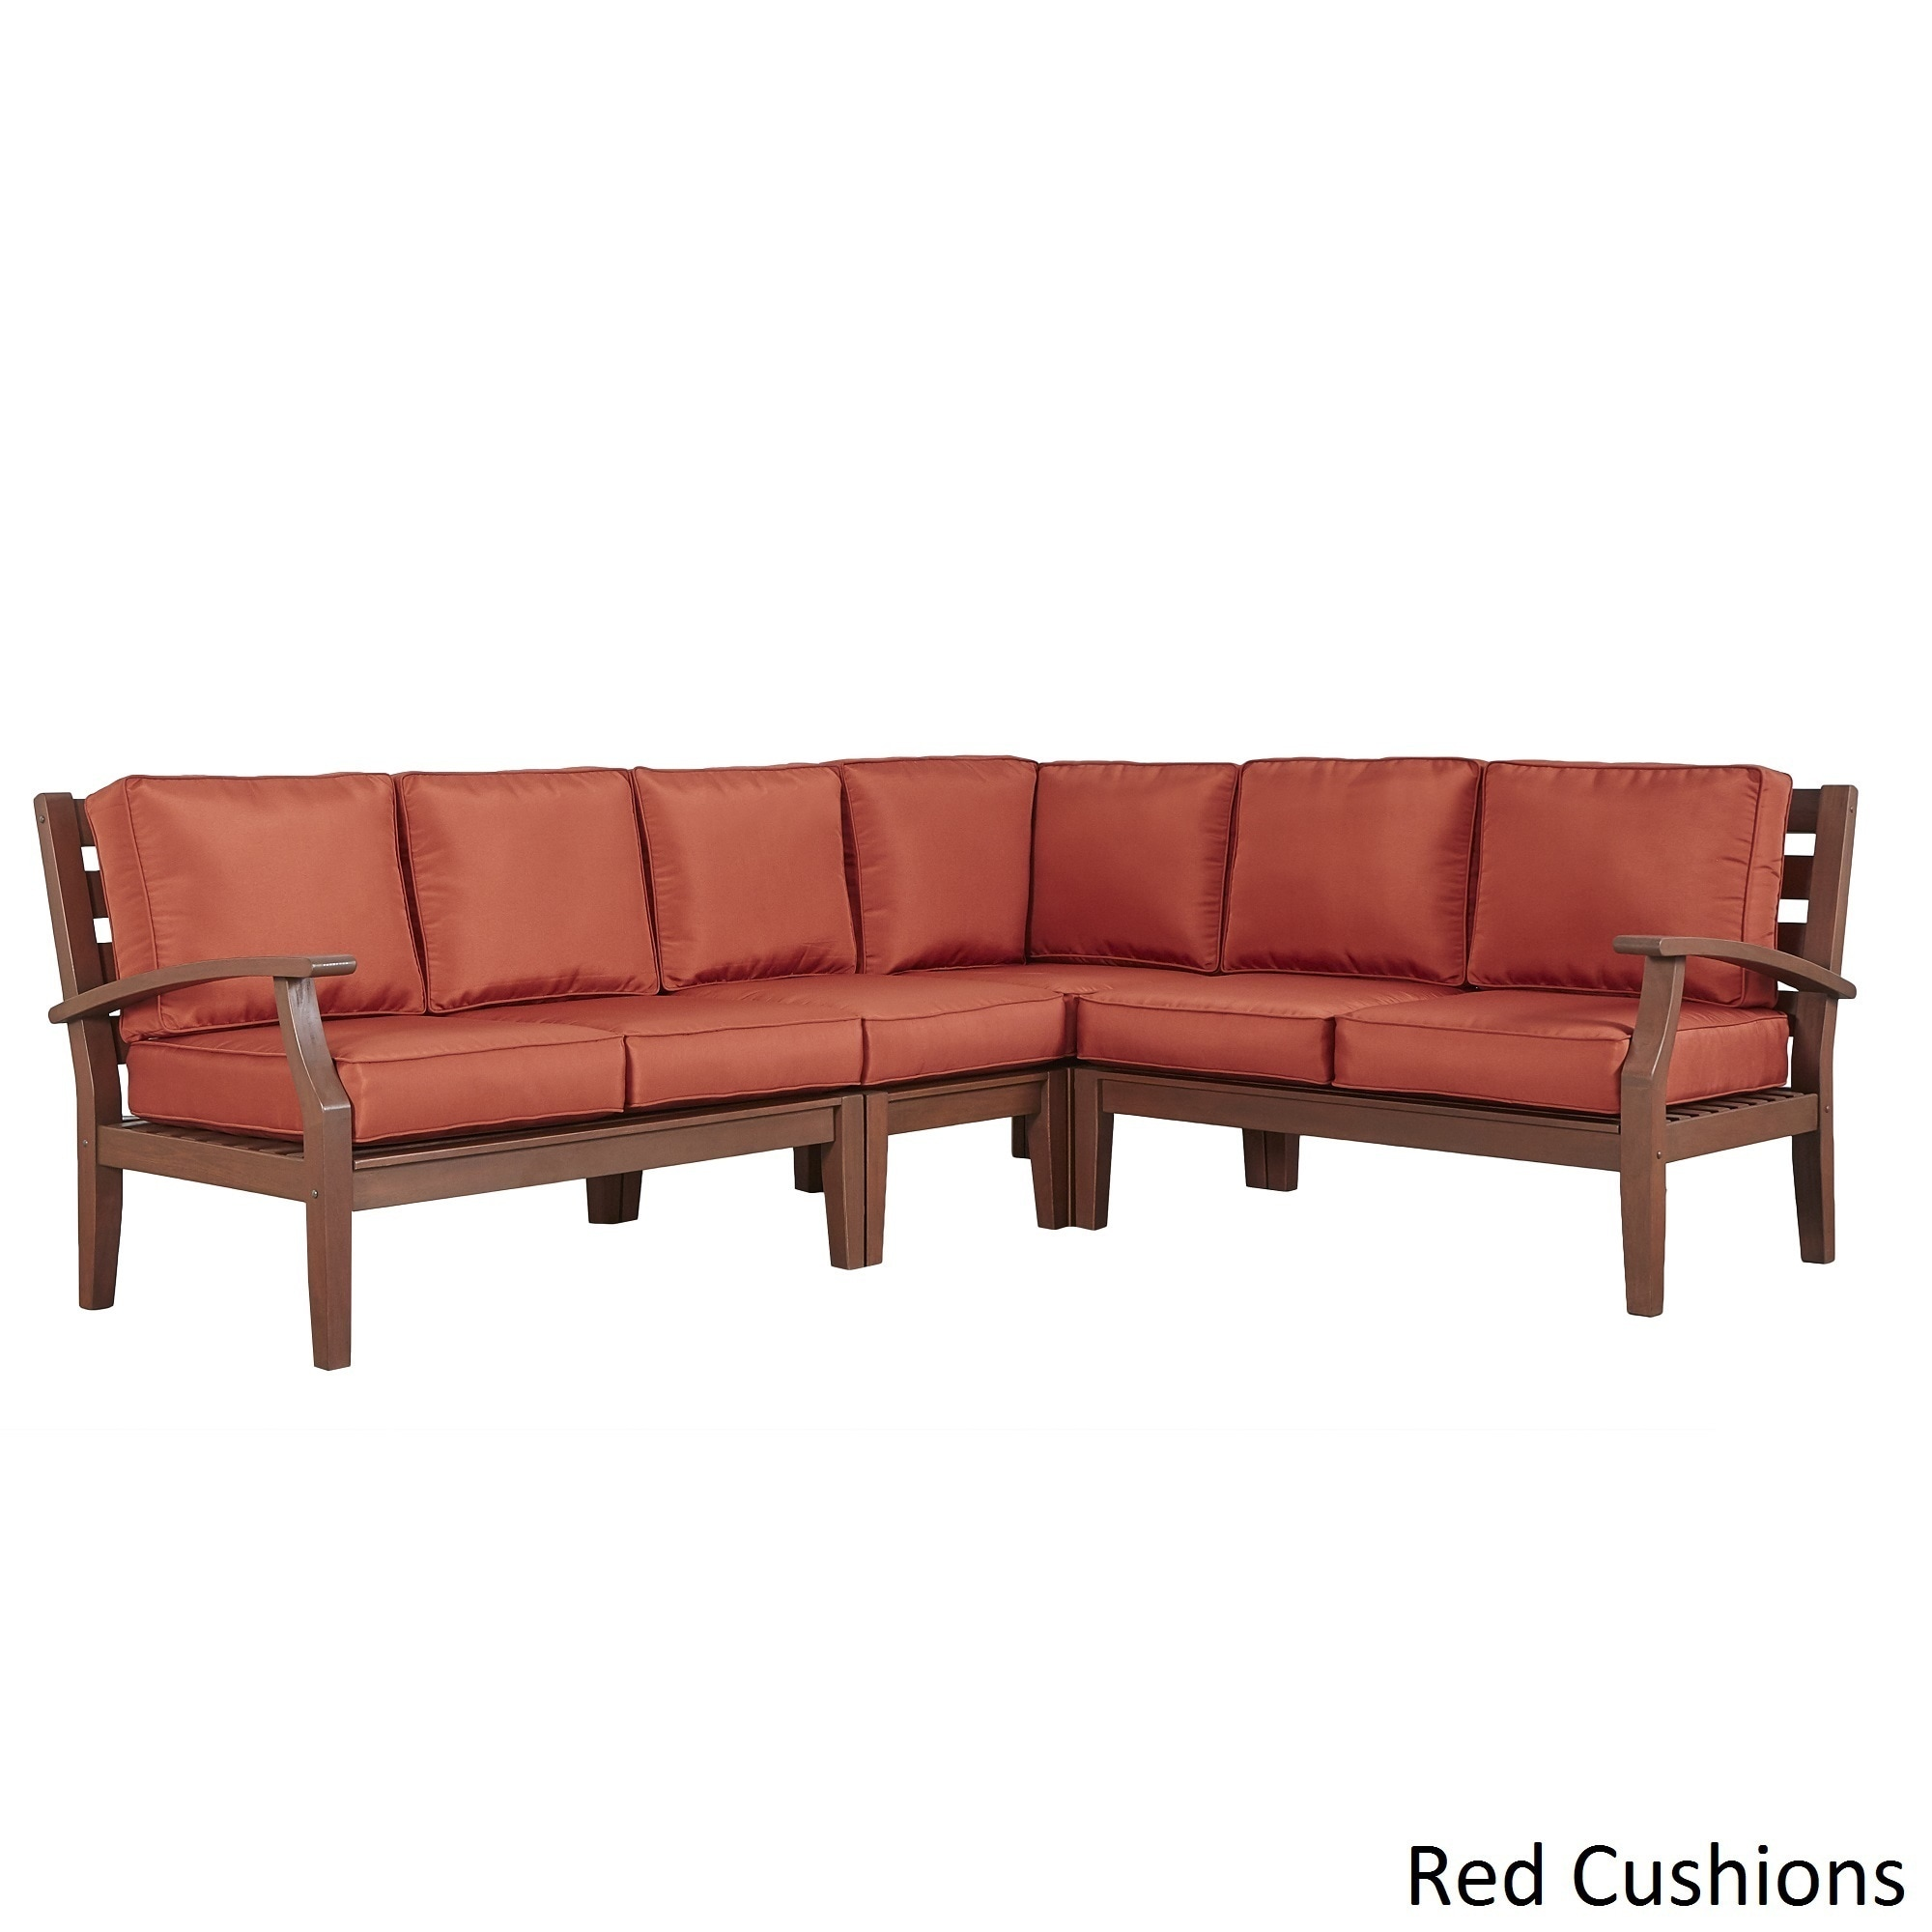 Red Outdoor Sofas, Chairs & Sectionals For Less | Overstock.com